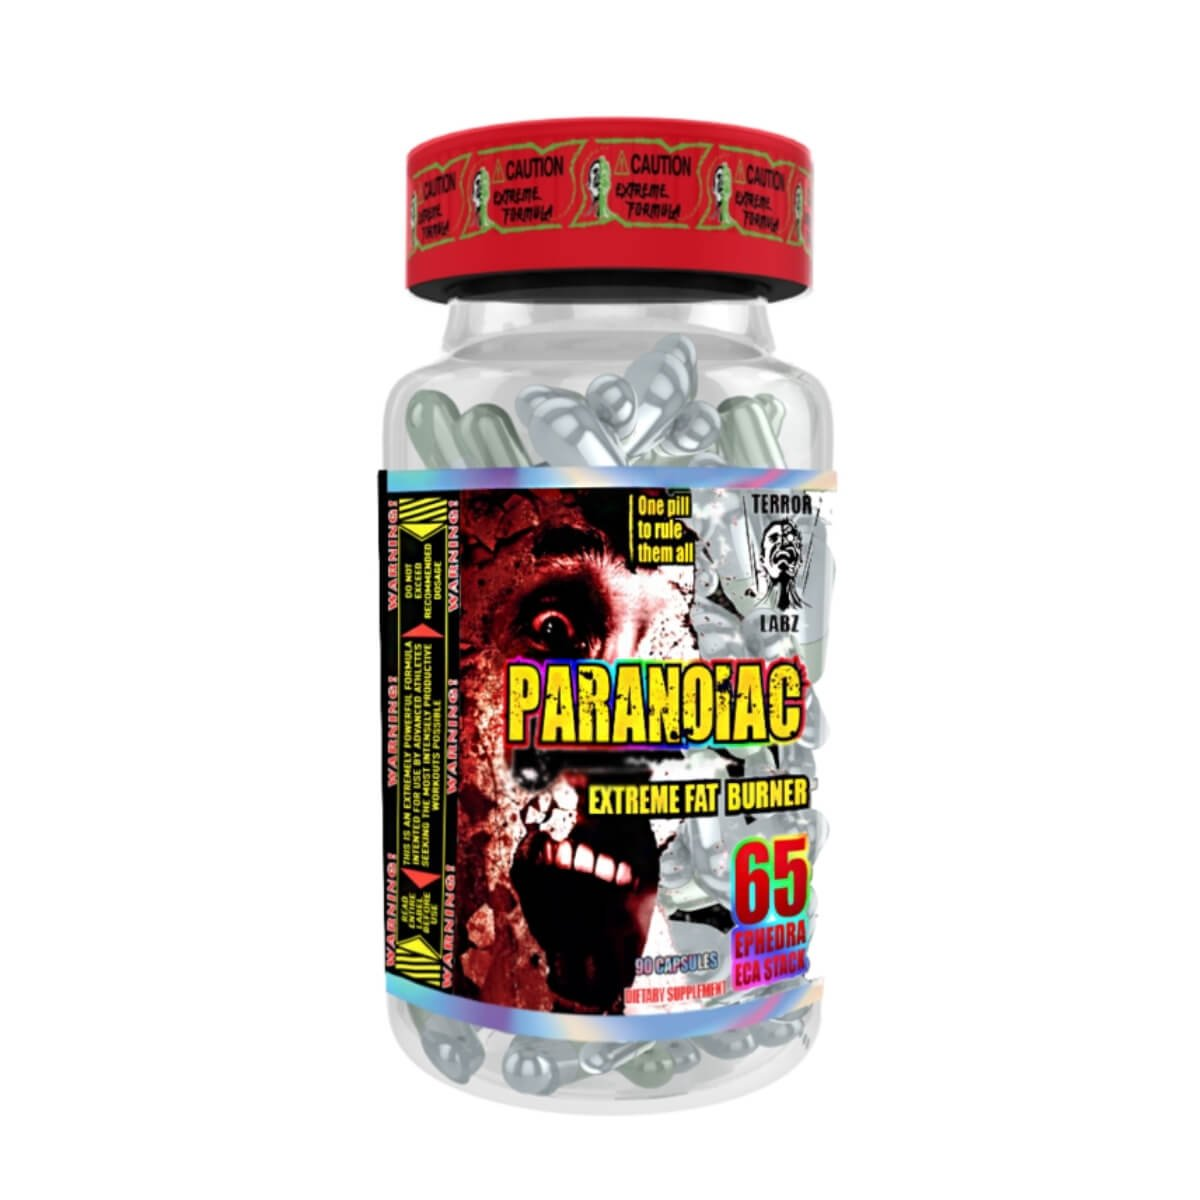 paranoic fat burner